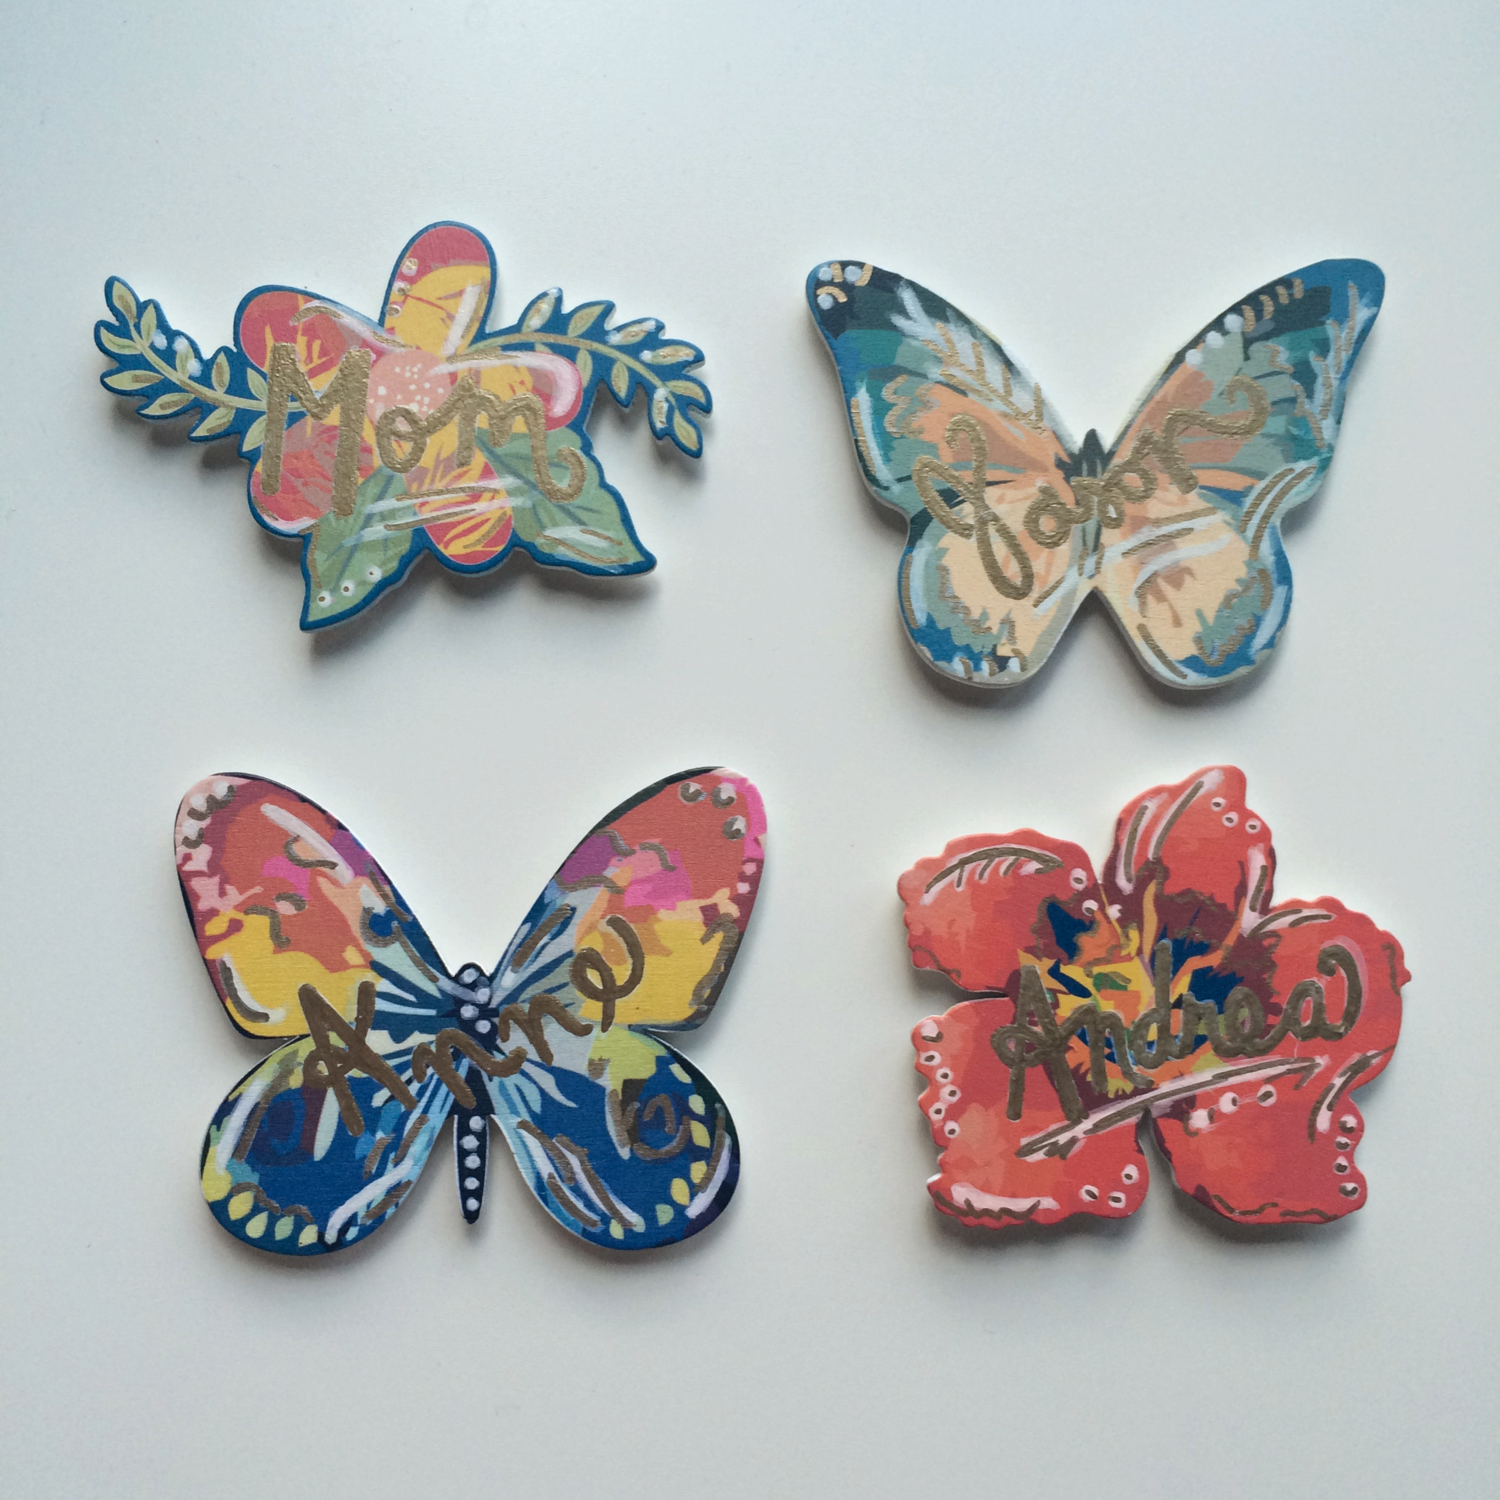 MAGNET PLACE CARDS. - AUG. 2015